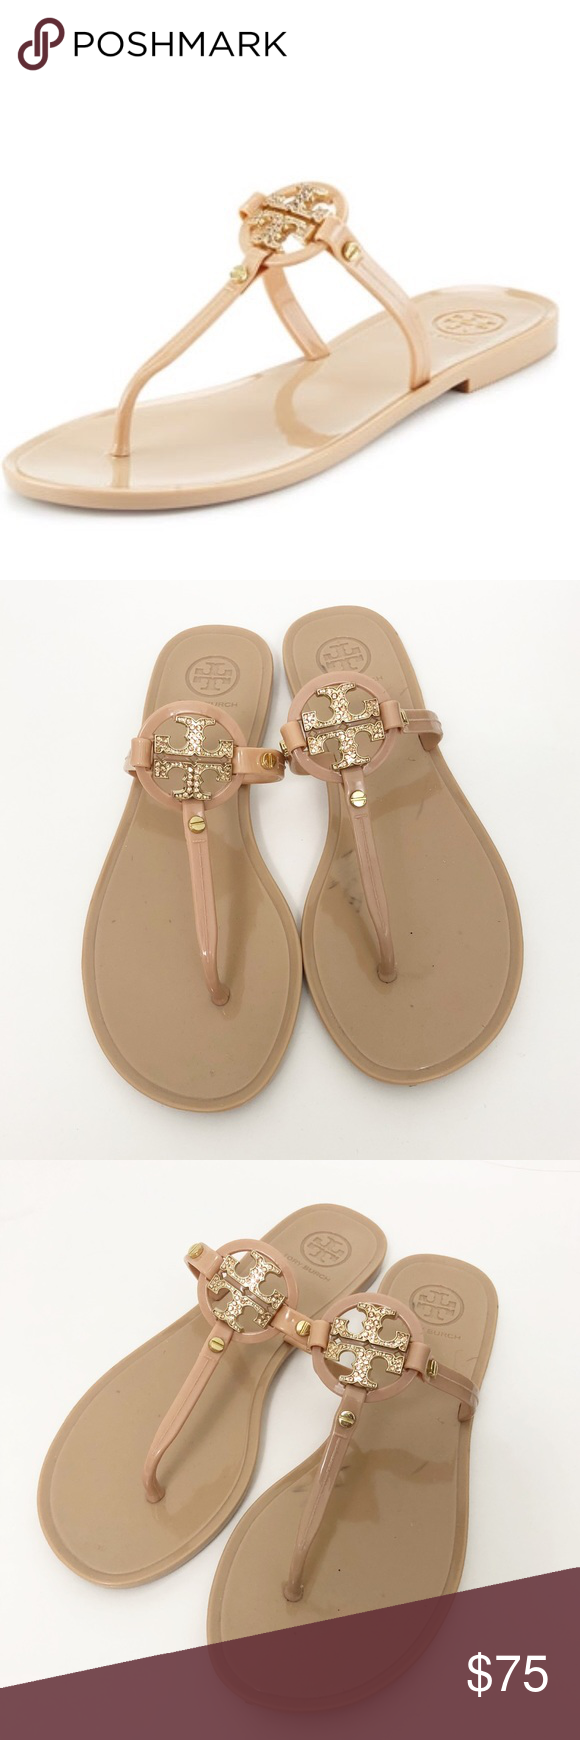 20c92c44ed8e5b Tory Burch Mini Miller Nude Jelly Thong Sandals Tory Burch Mini Miller Nude  Jelly Thong Sandals Size 6 Good condition